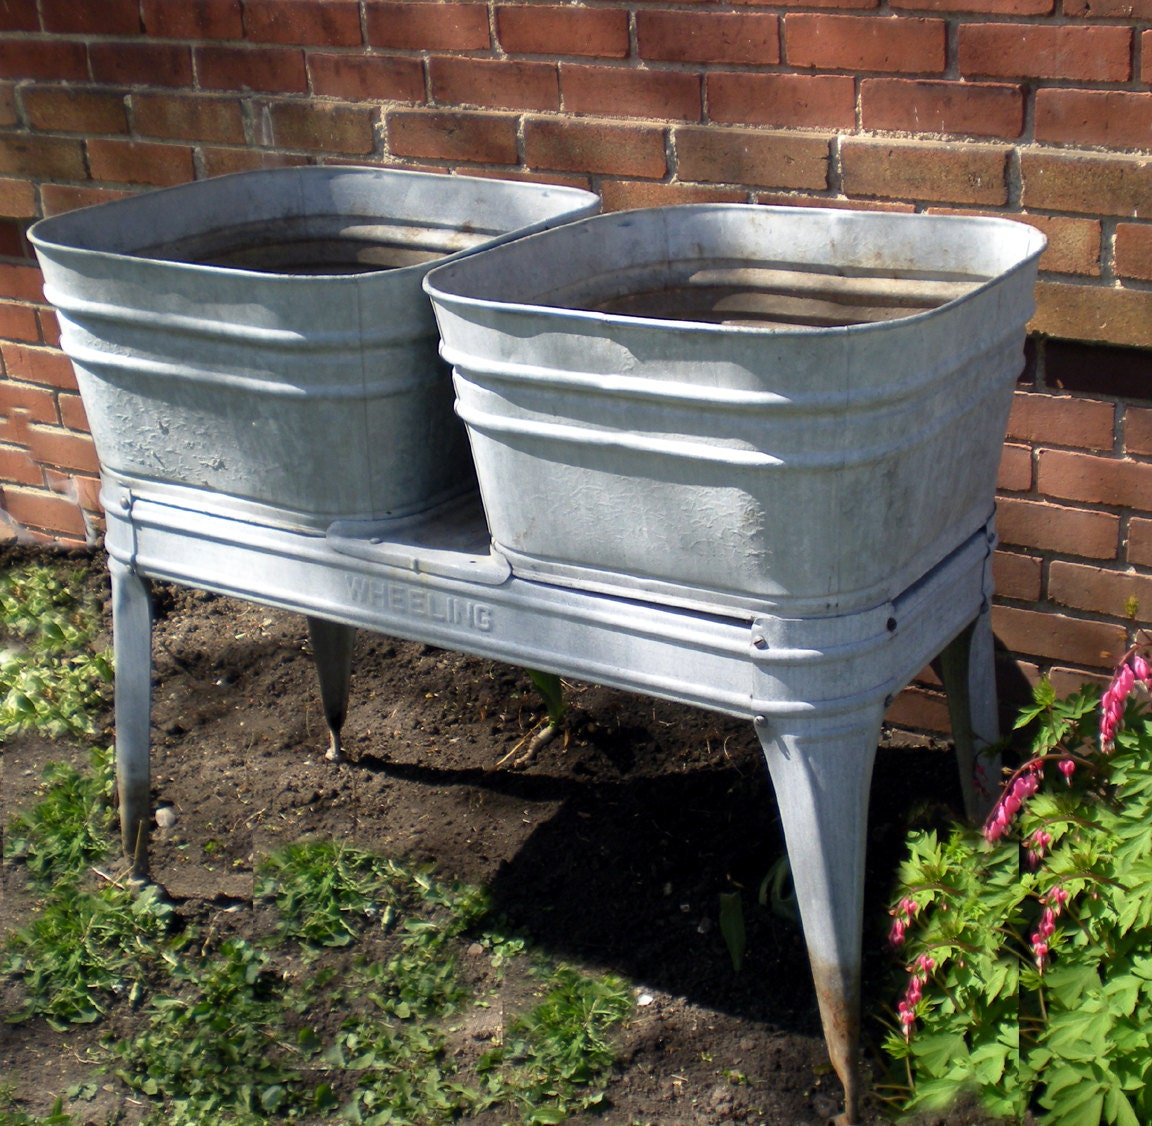 Laundry Wash Tub : Rare Wheeling Galvanized Wash tubs double two Garden decor